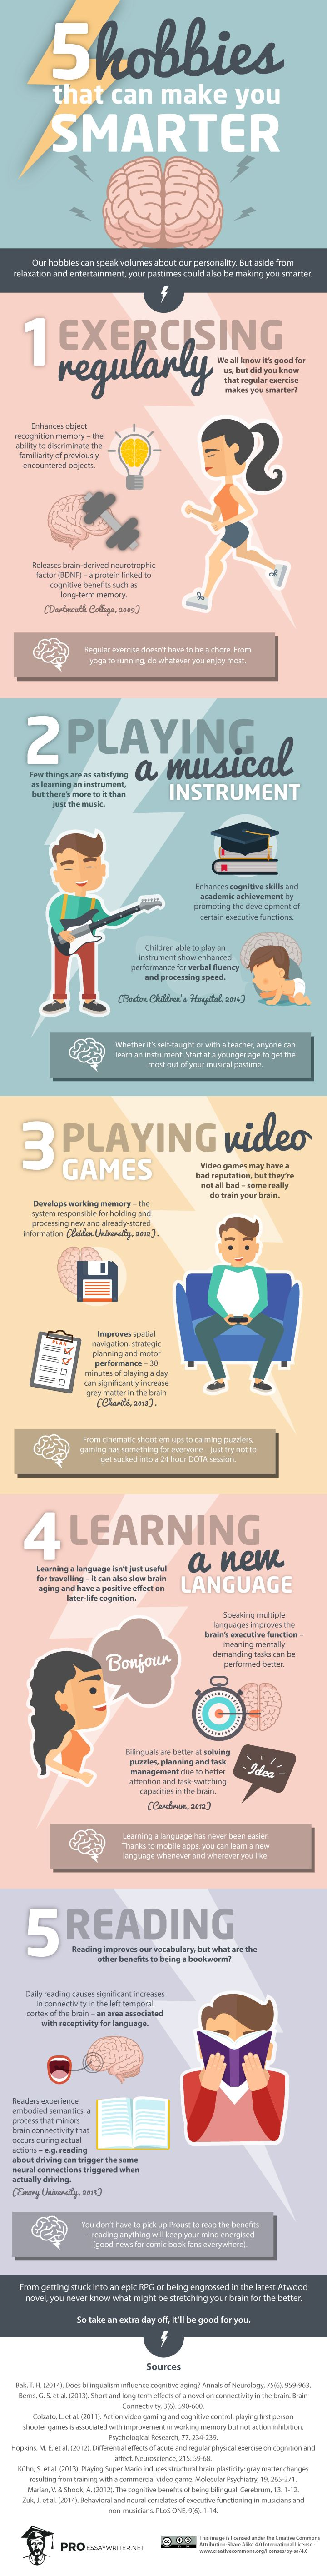 Psychology : What Are 5 Fun Hobbies That Can Make You Smarter? #infographic